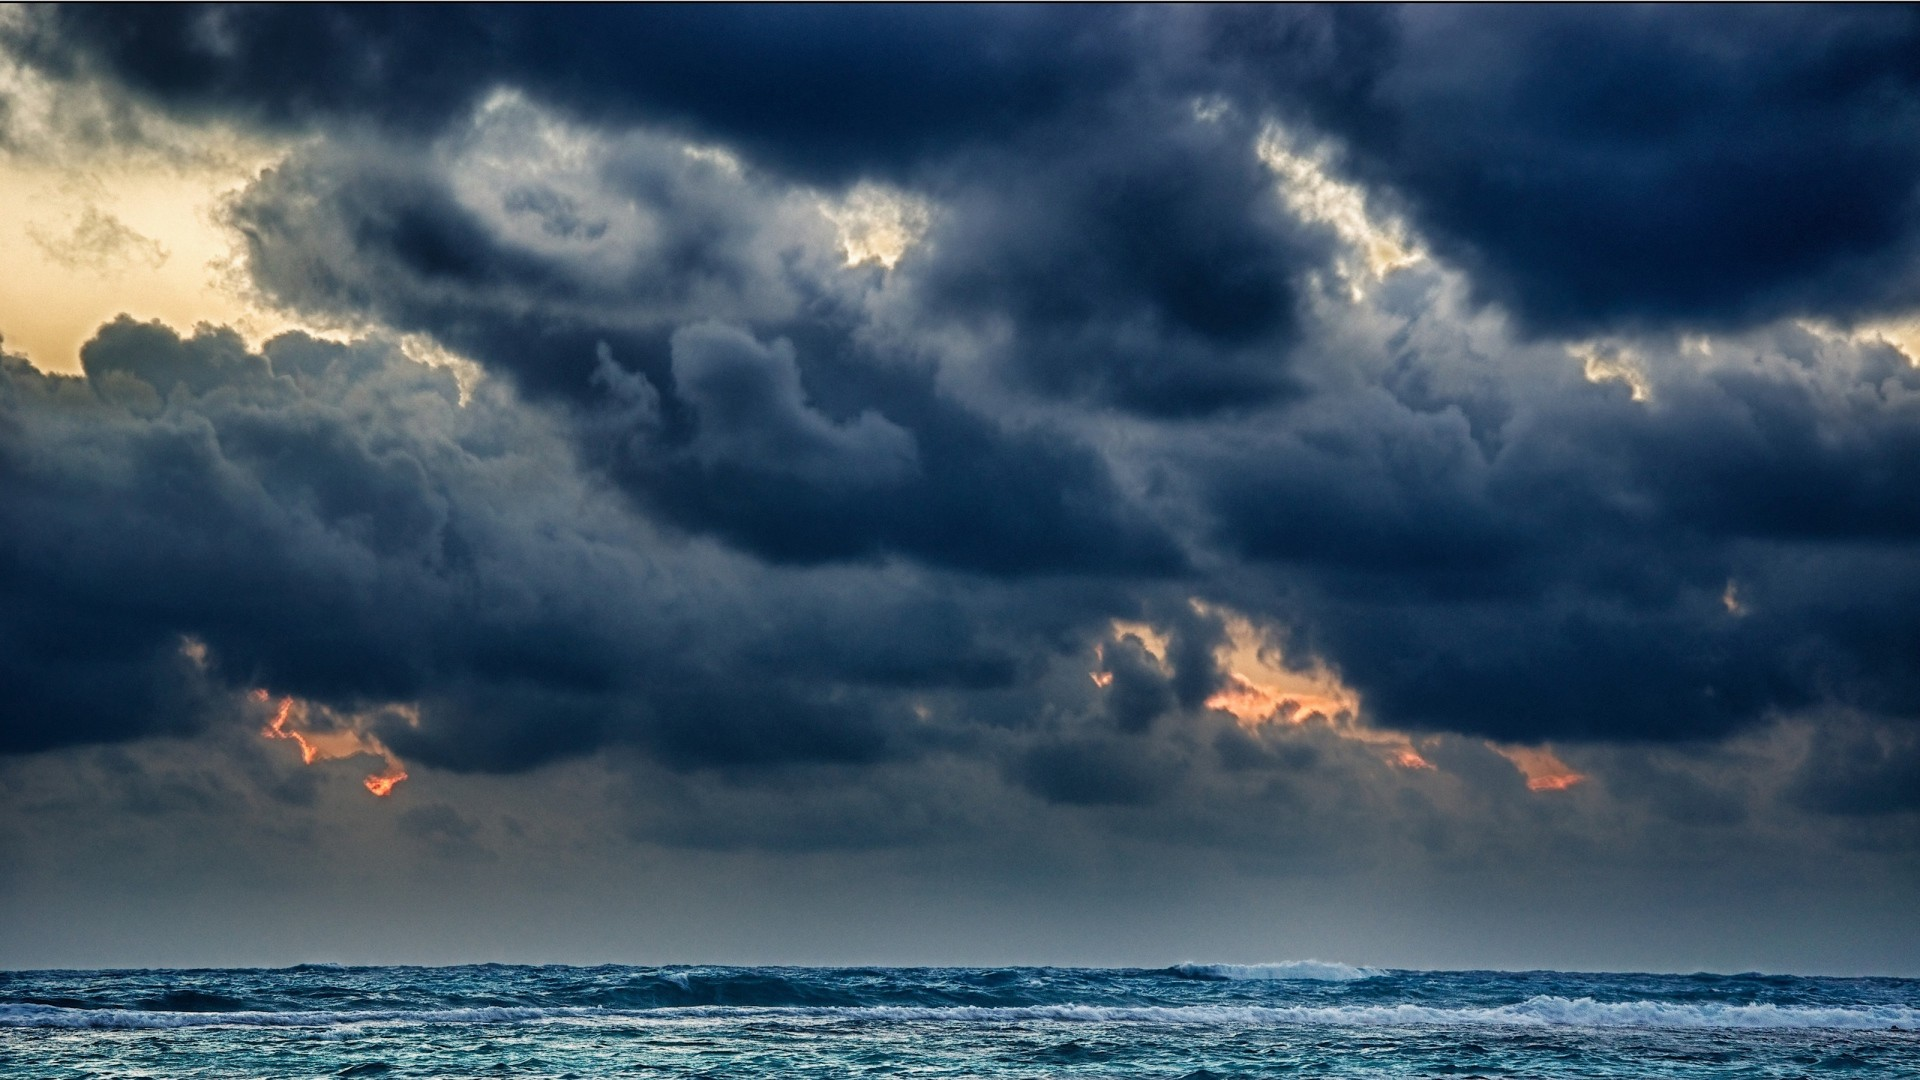 Res: 1920x1080, Wonderful Nature Clouds Raining on Sea